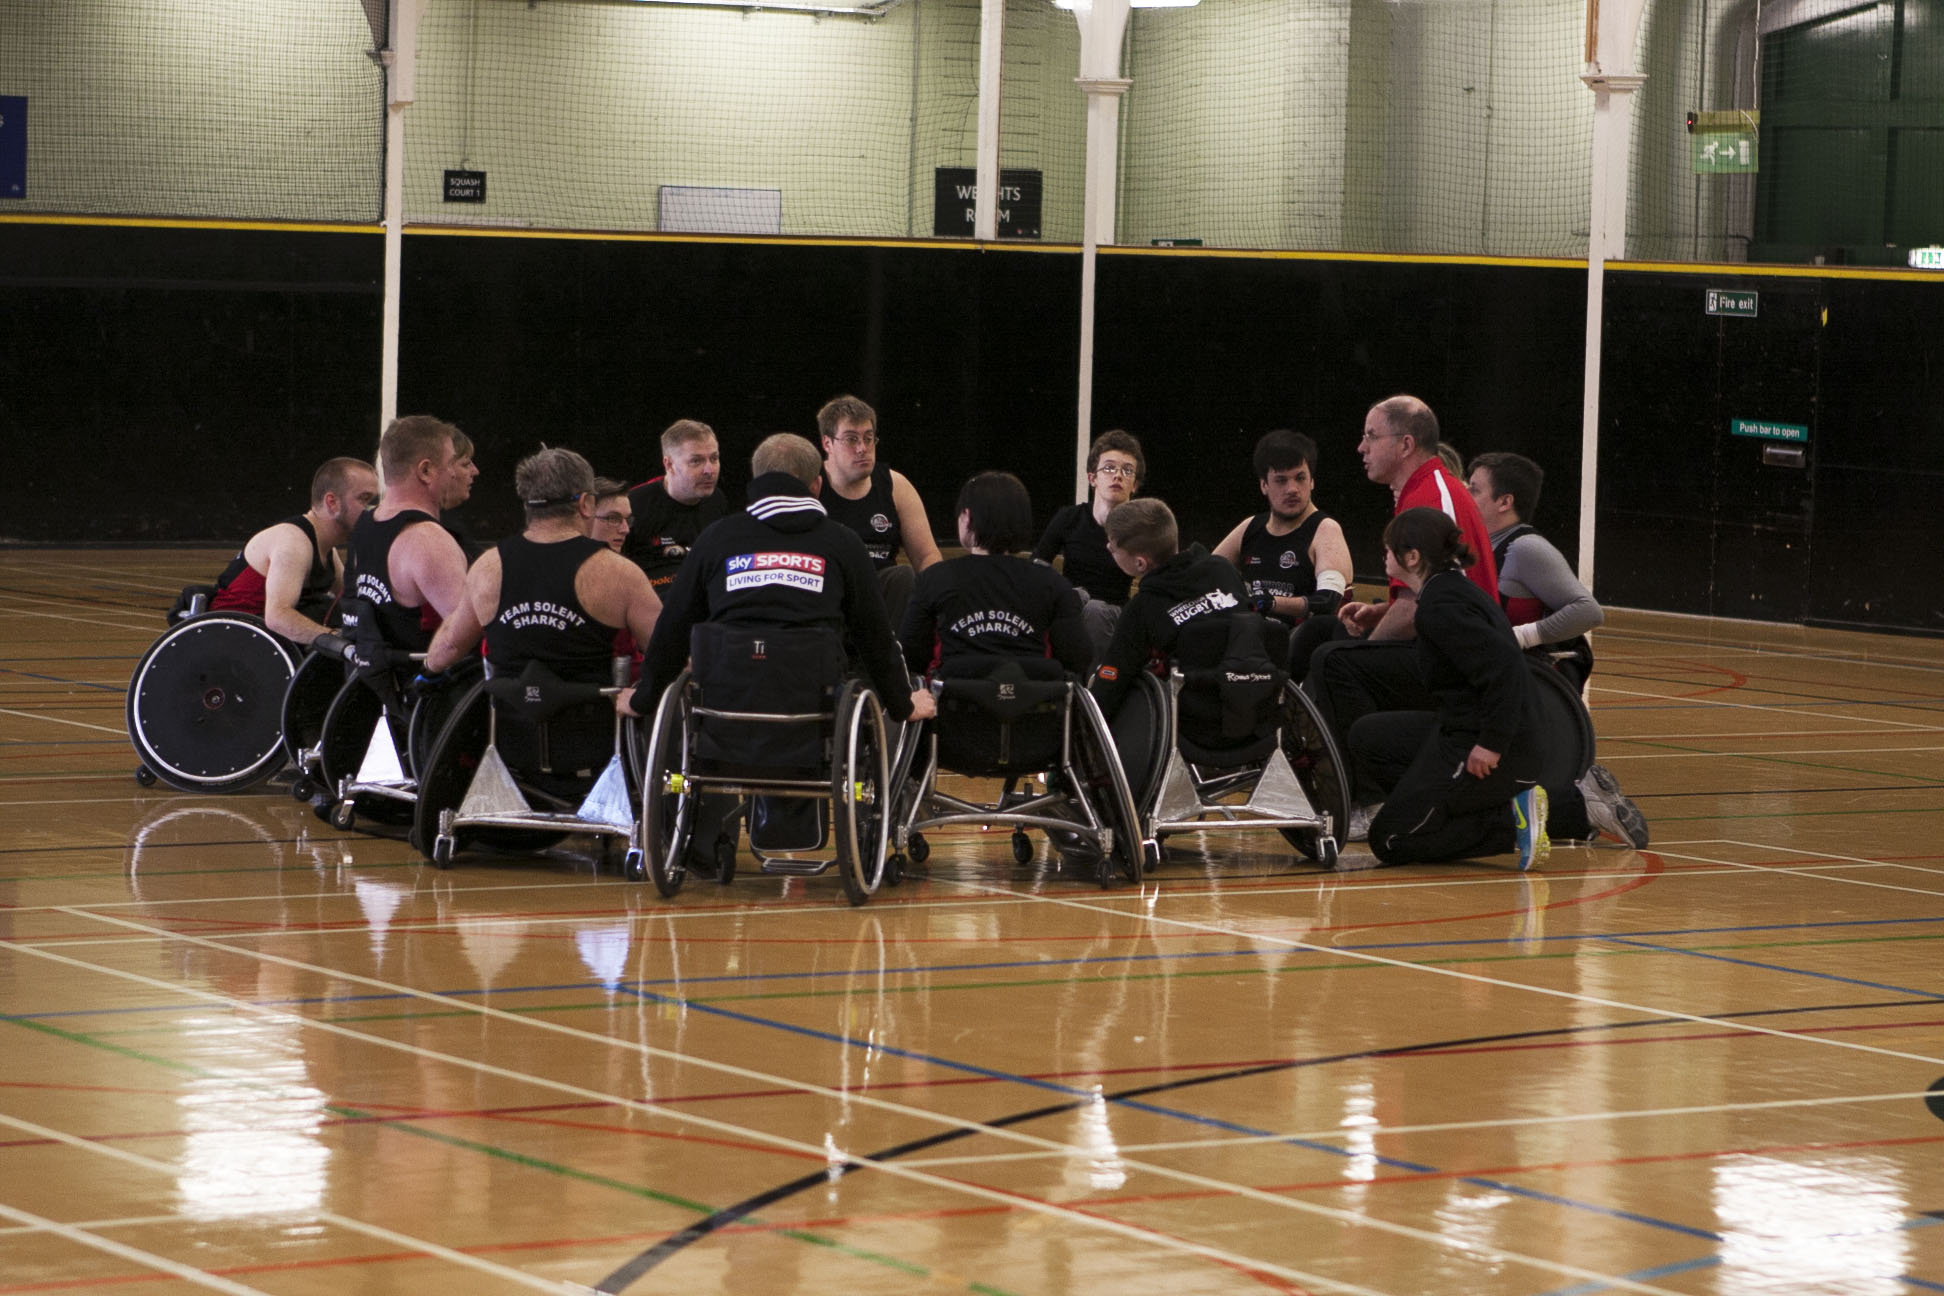 Team Solent's Wheelchair Rugby team head to Germany for the Bernd Best Tournament